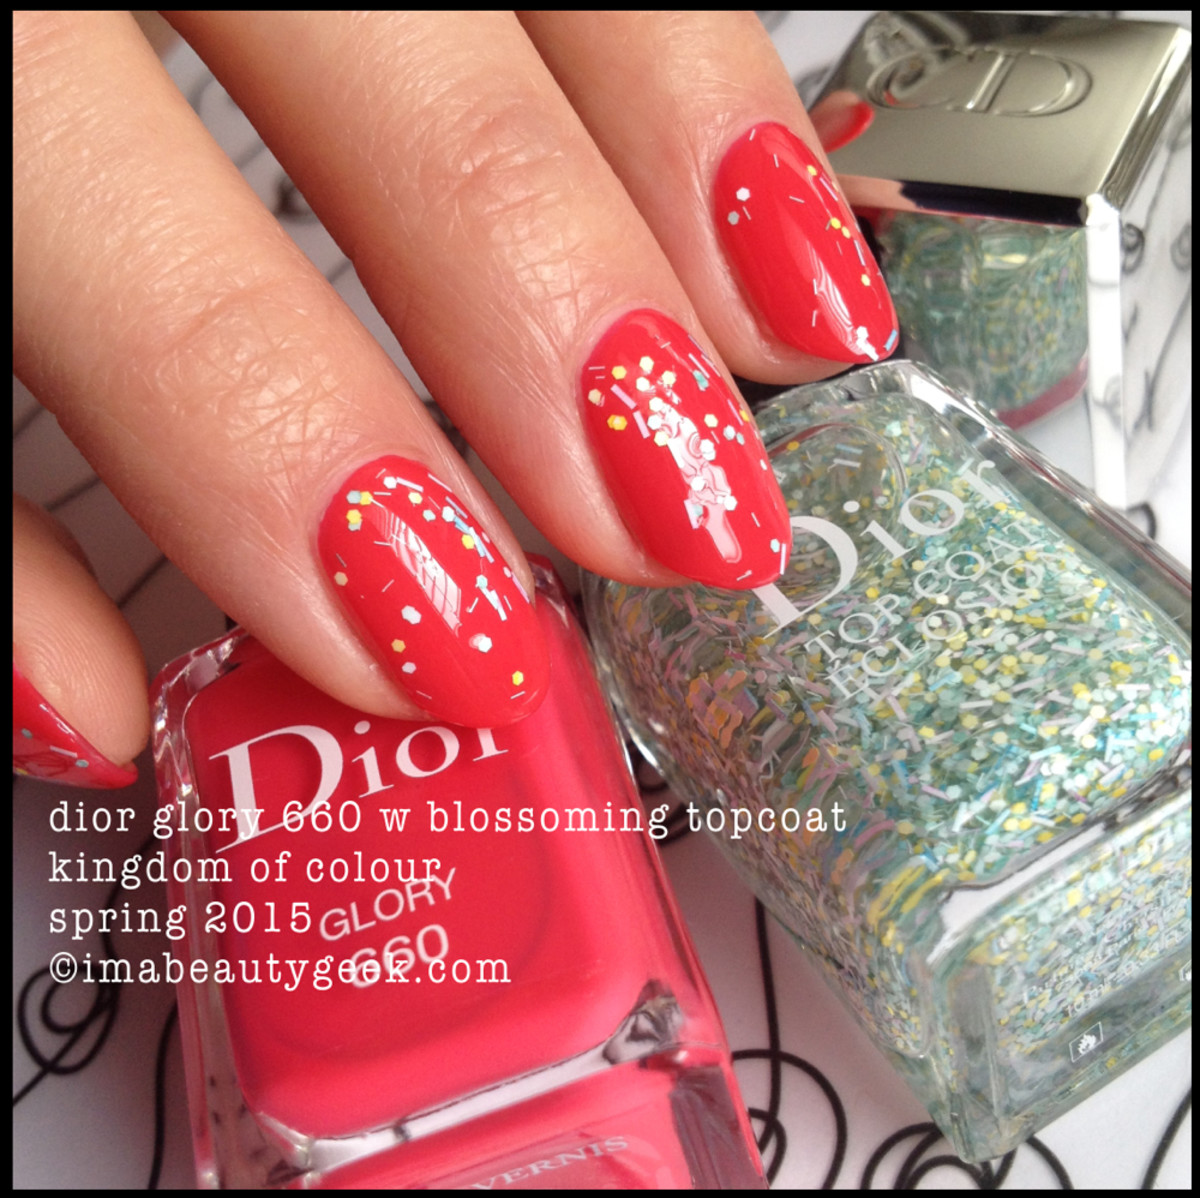 Dior Glory 660 w Dior Blossoming top coat